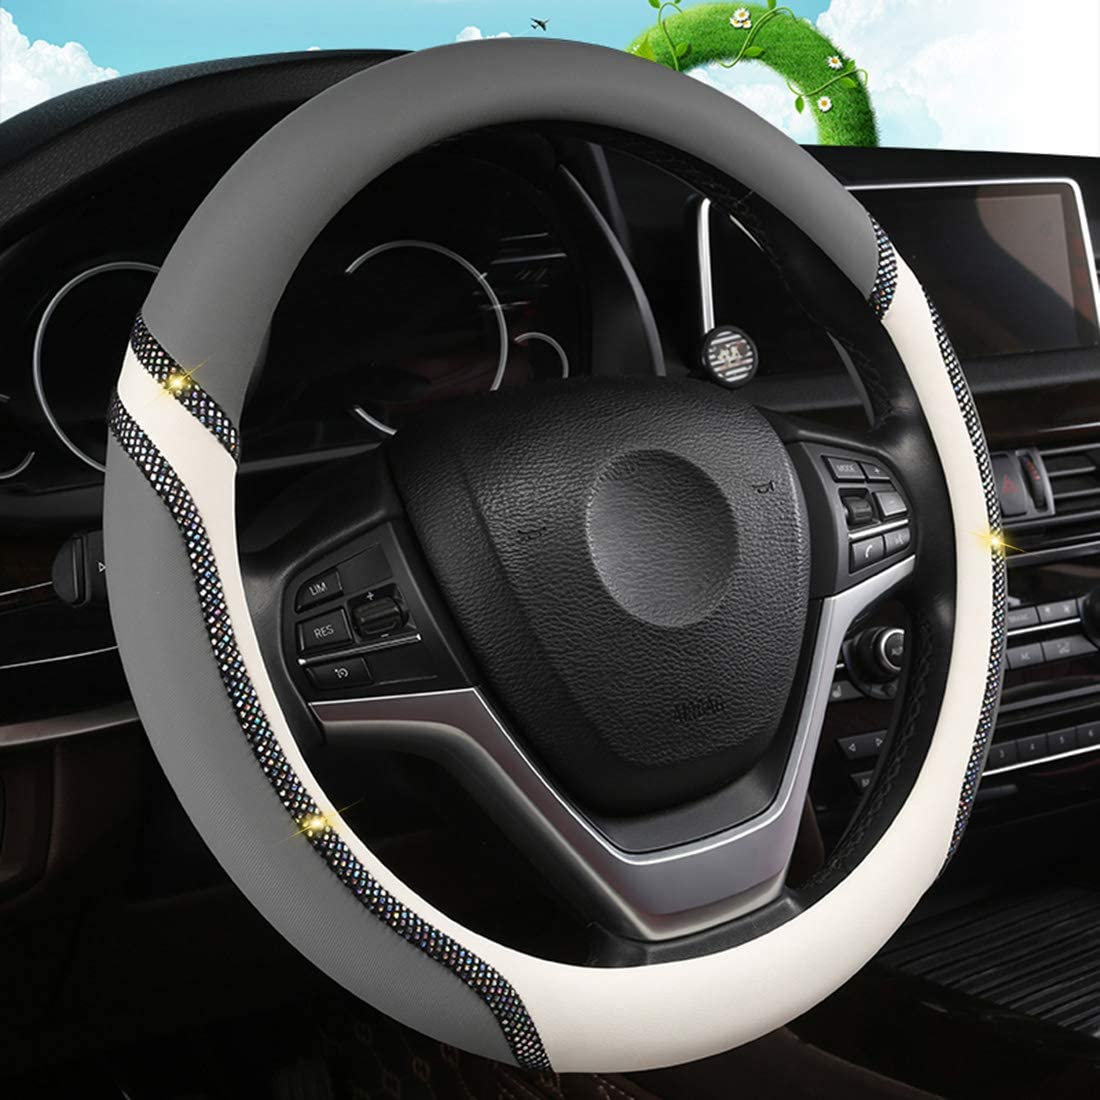 Black GIJITIF Bling Bling Steering Wheel Cover for Women Fashion Universal Steering Wheel Protector 15 inches